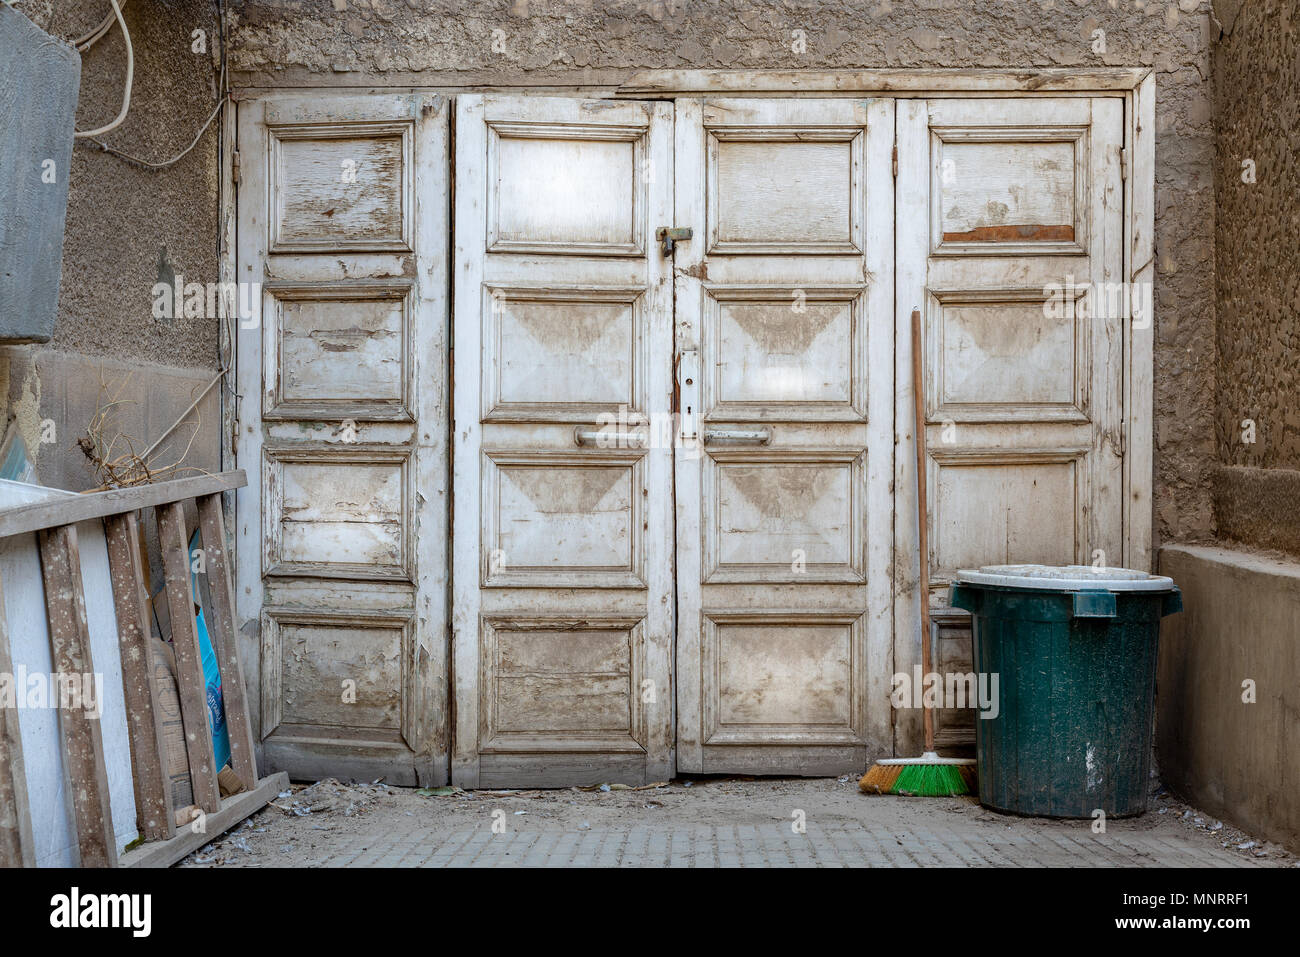 Wooden grunge weathered abandoned door painted in white, green trash can and ladder - Stock Image